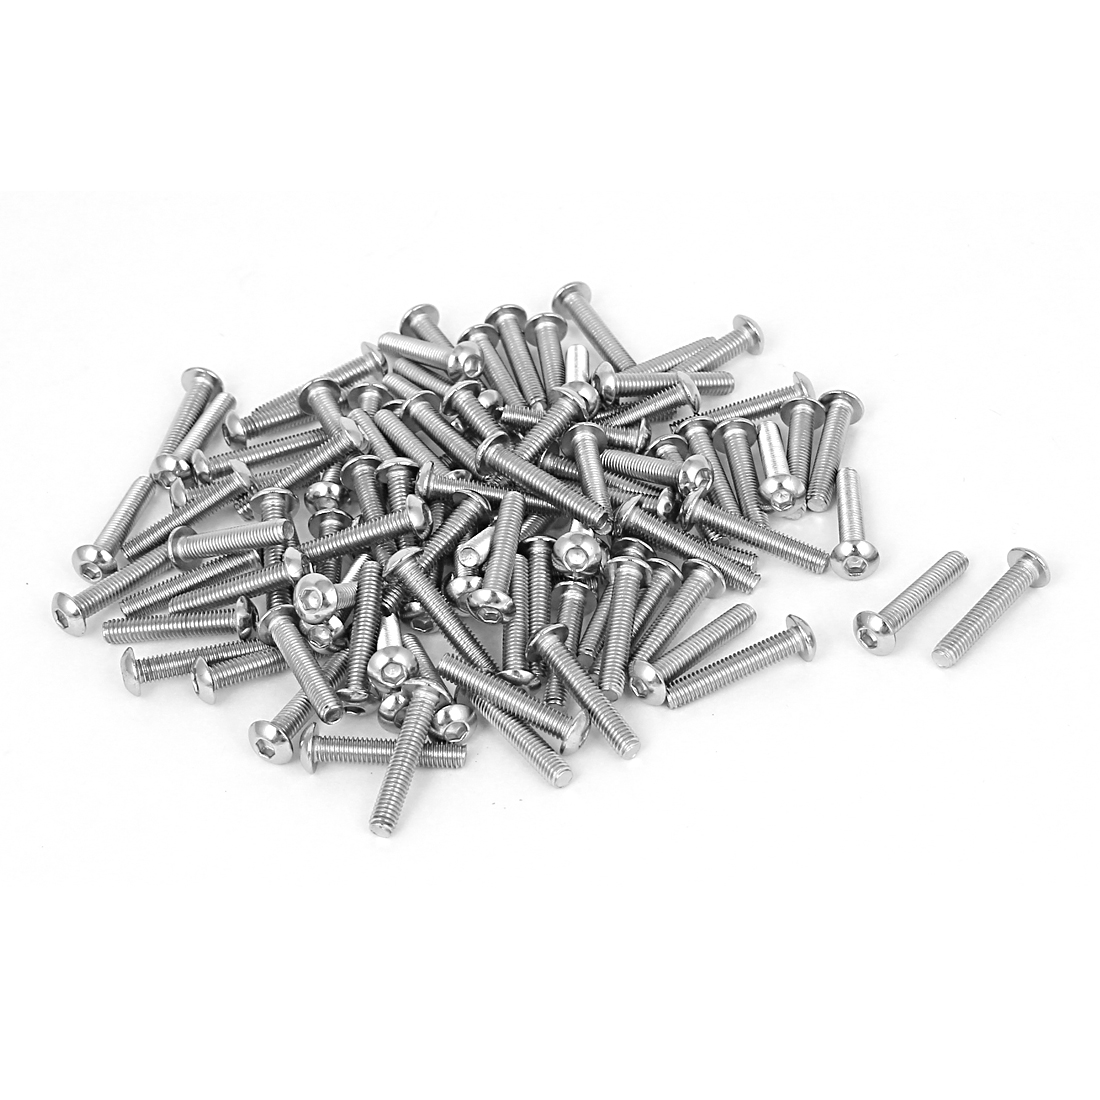 100 Pcs M3x16mm Stainless Steel Hex Socket Button Head Bolts Screws 0.5mm Pitch